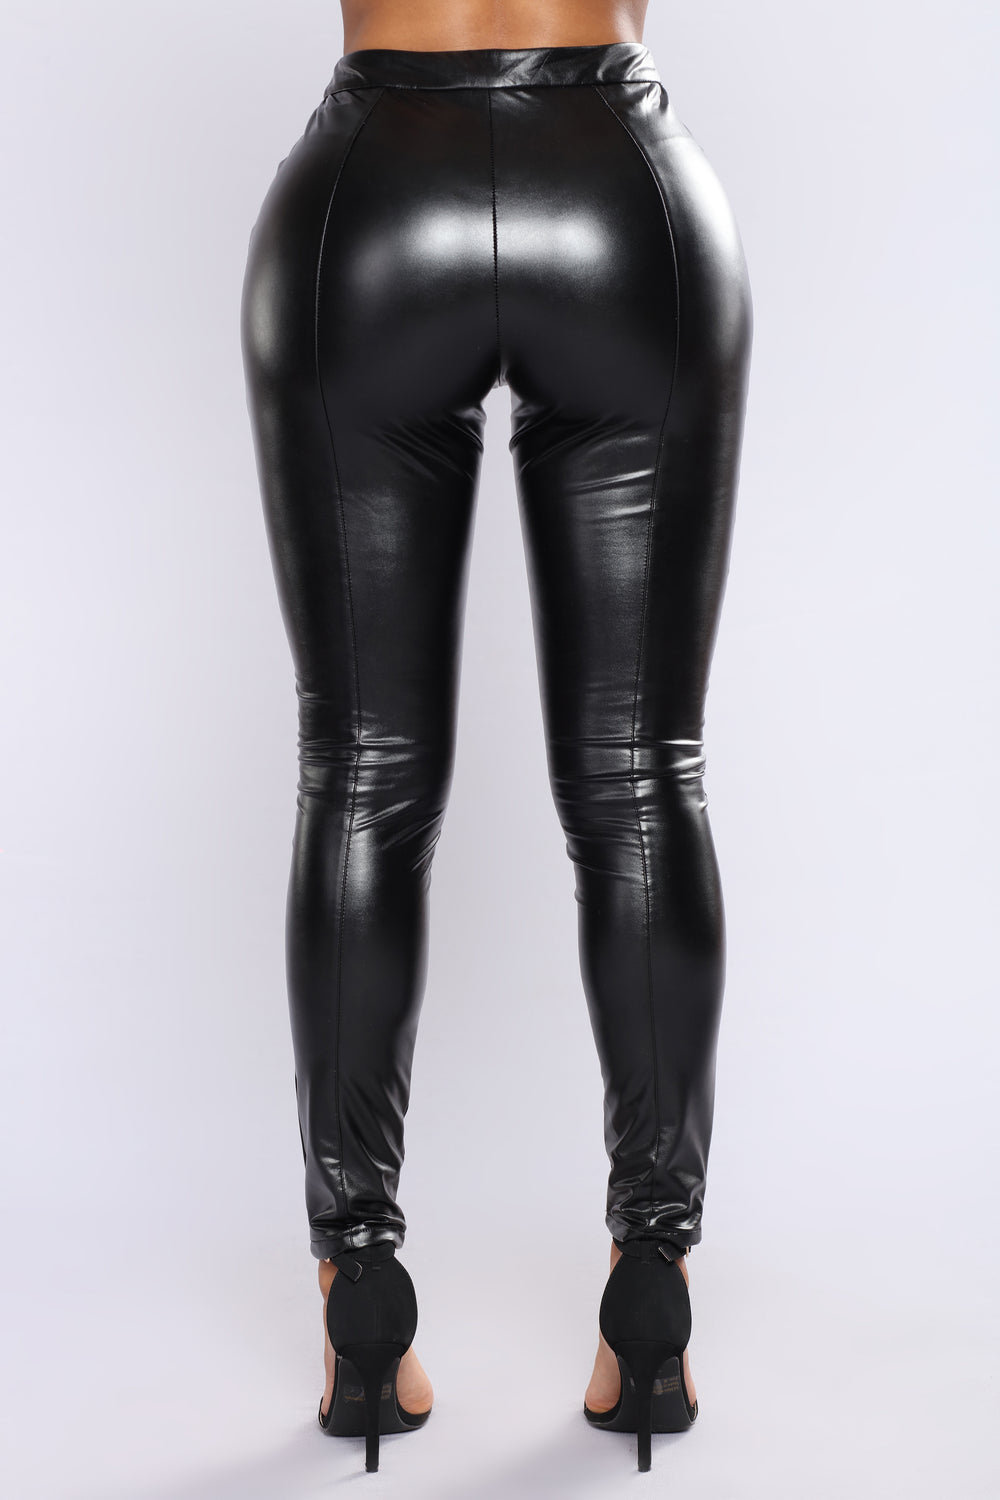 Your fix of total fierceness has arrived thanks to our dope range of faux leather pants. These slick bad boys are seriously too hot to handle and you will be too once you don a pair. Channel a rock n roll edge mixed with urban street stylin' and clean cut minimalism, depending on how you style these beauts.